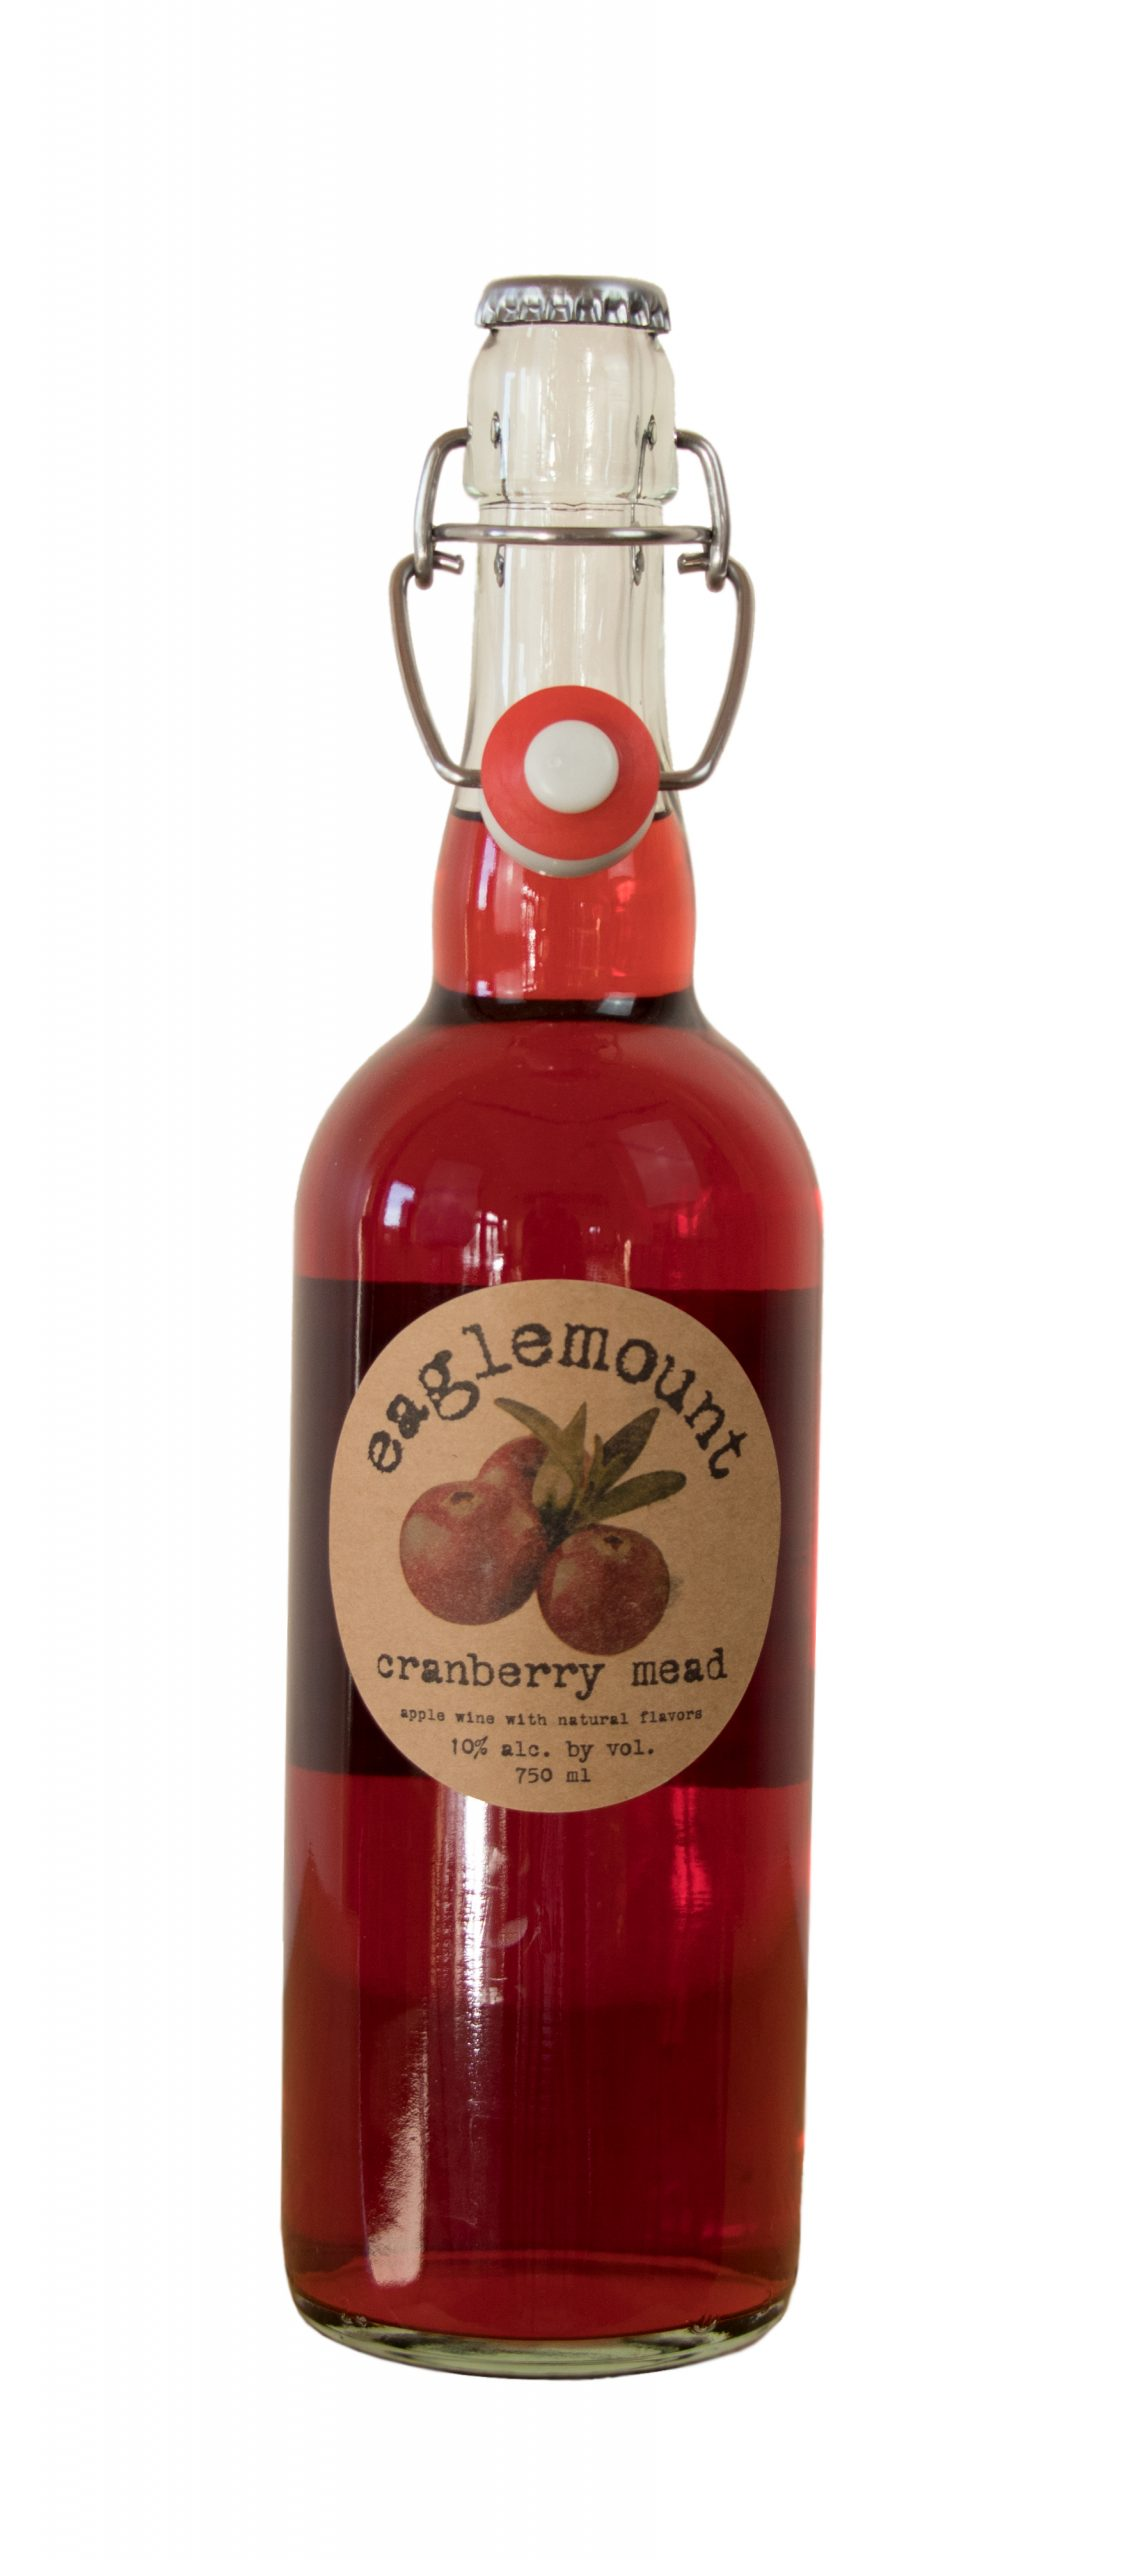 Cranberry Mead Eaglemount Winery Cidery